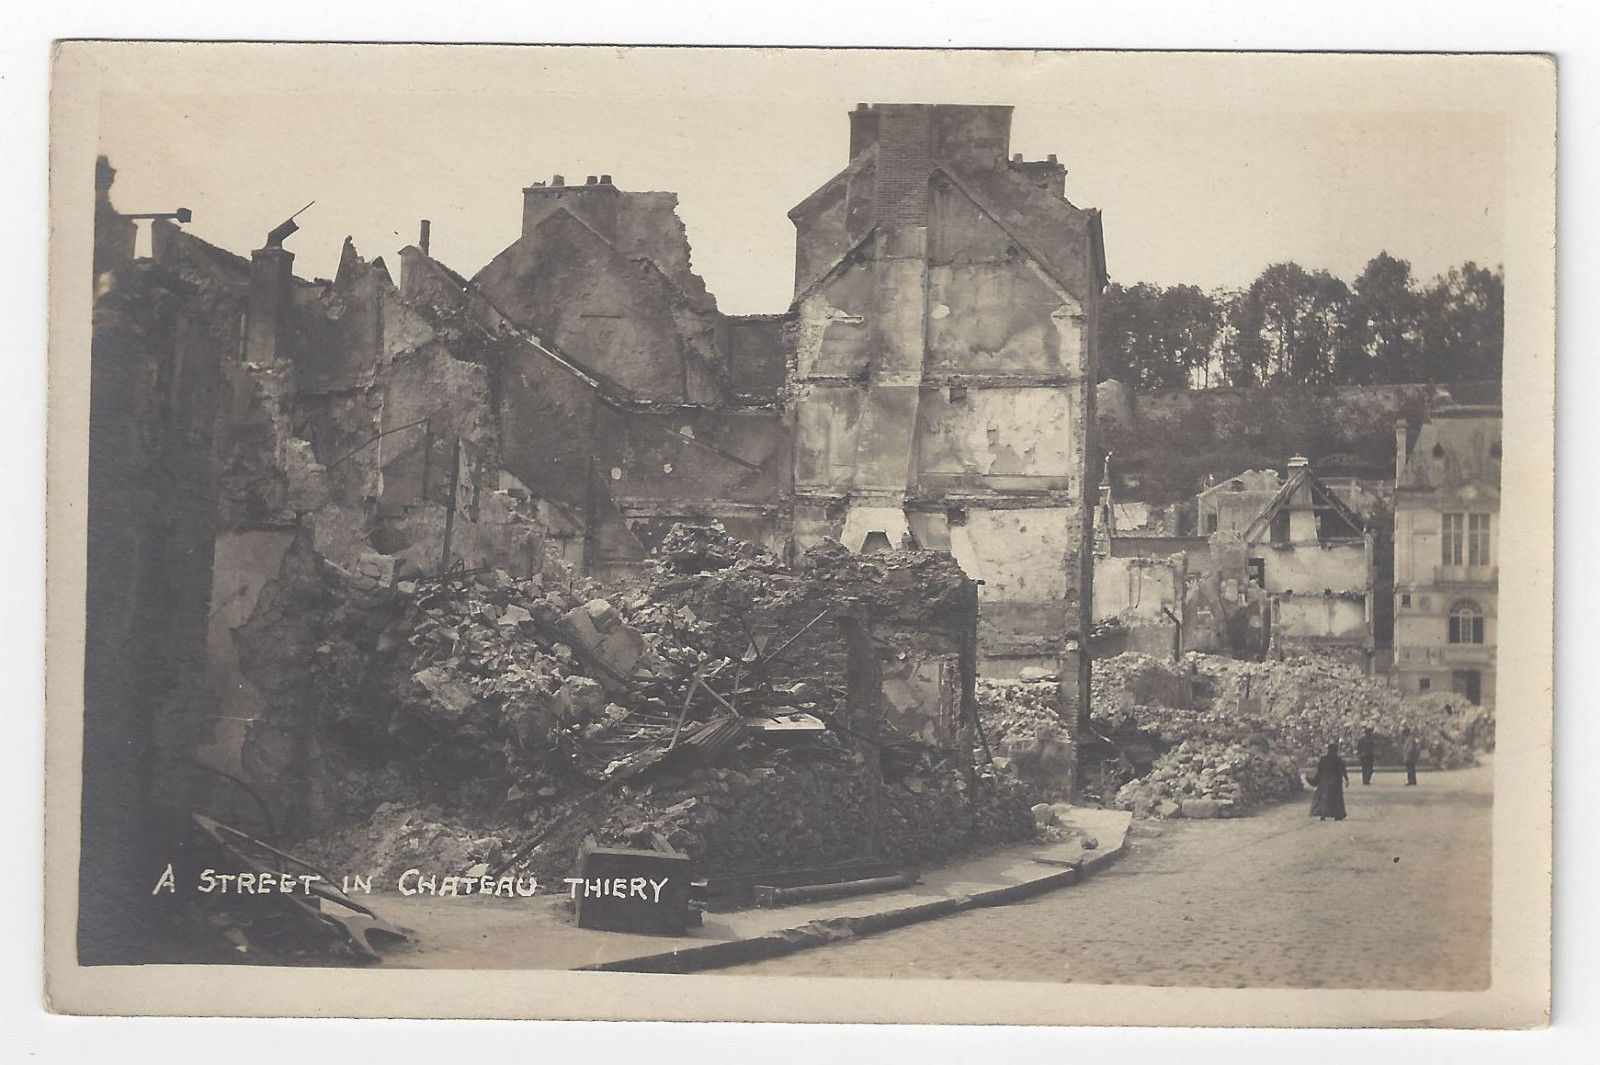 France Chateau Thierry Street WWI War Ruins Guerre Real Photo Post Card RPPC